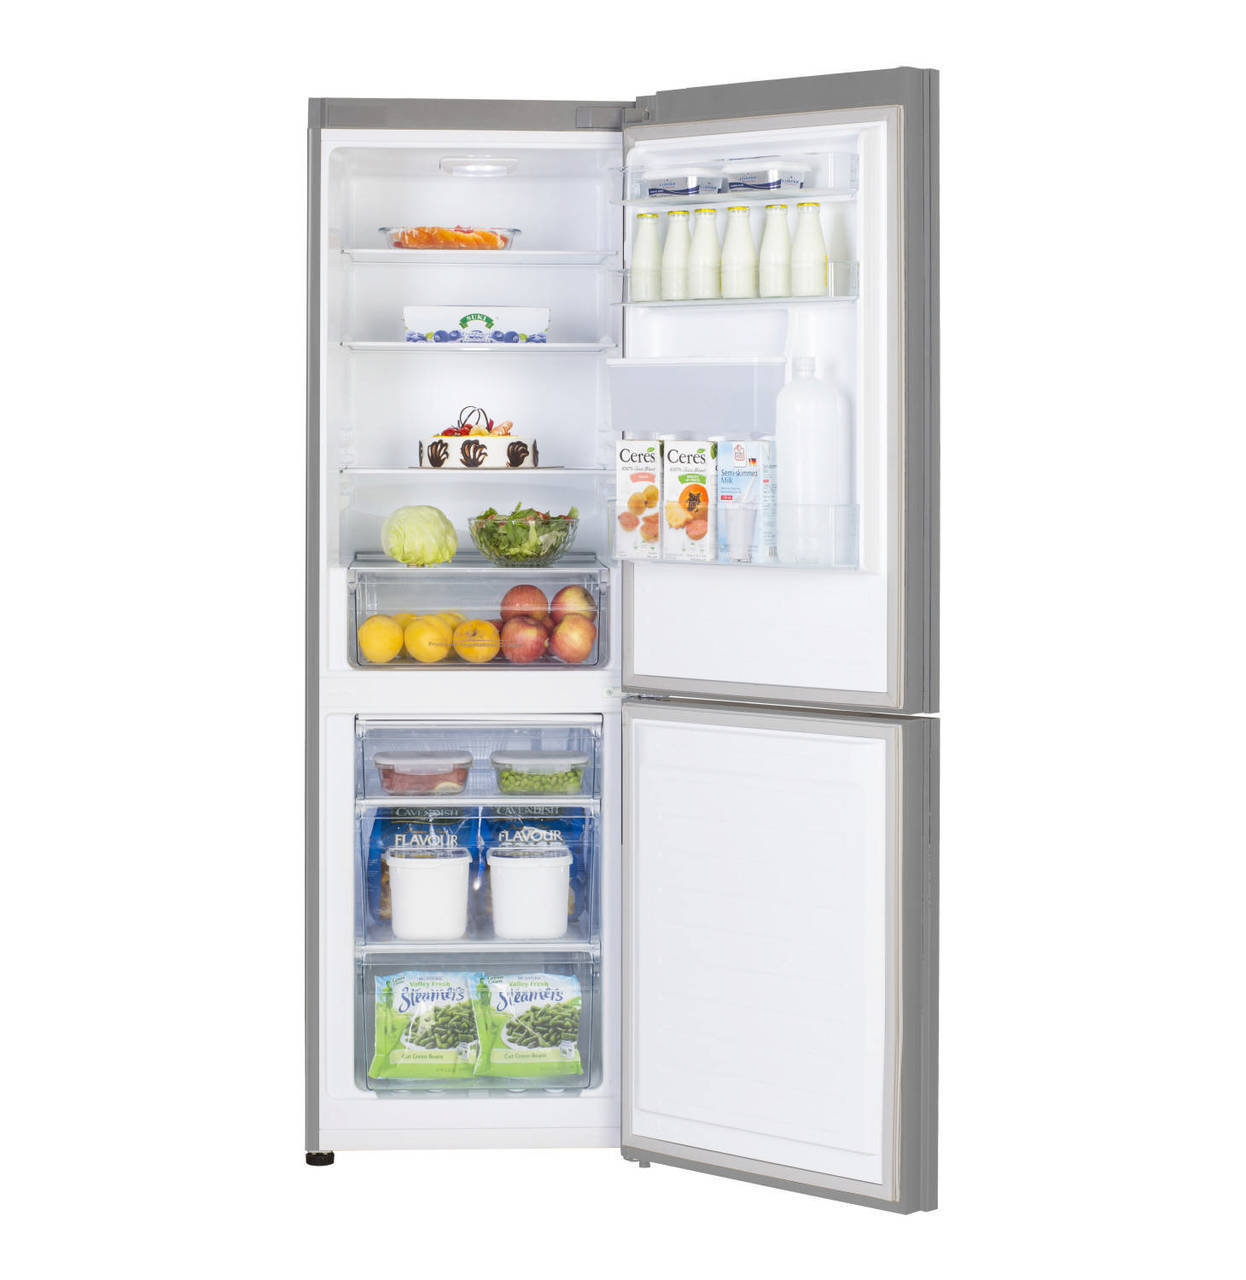 TODAY HISENSE 420 l Combi Fridge Freezer with Water Dispenser